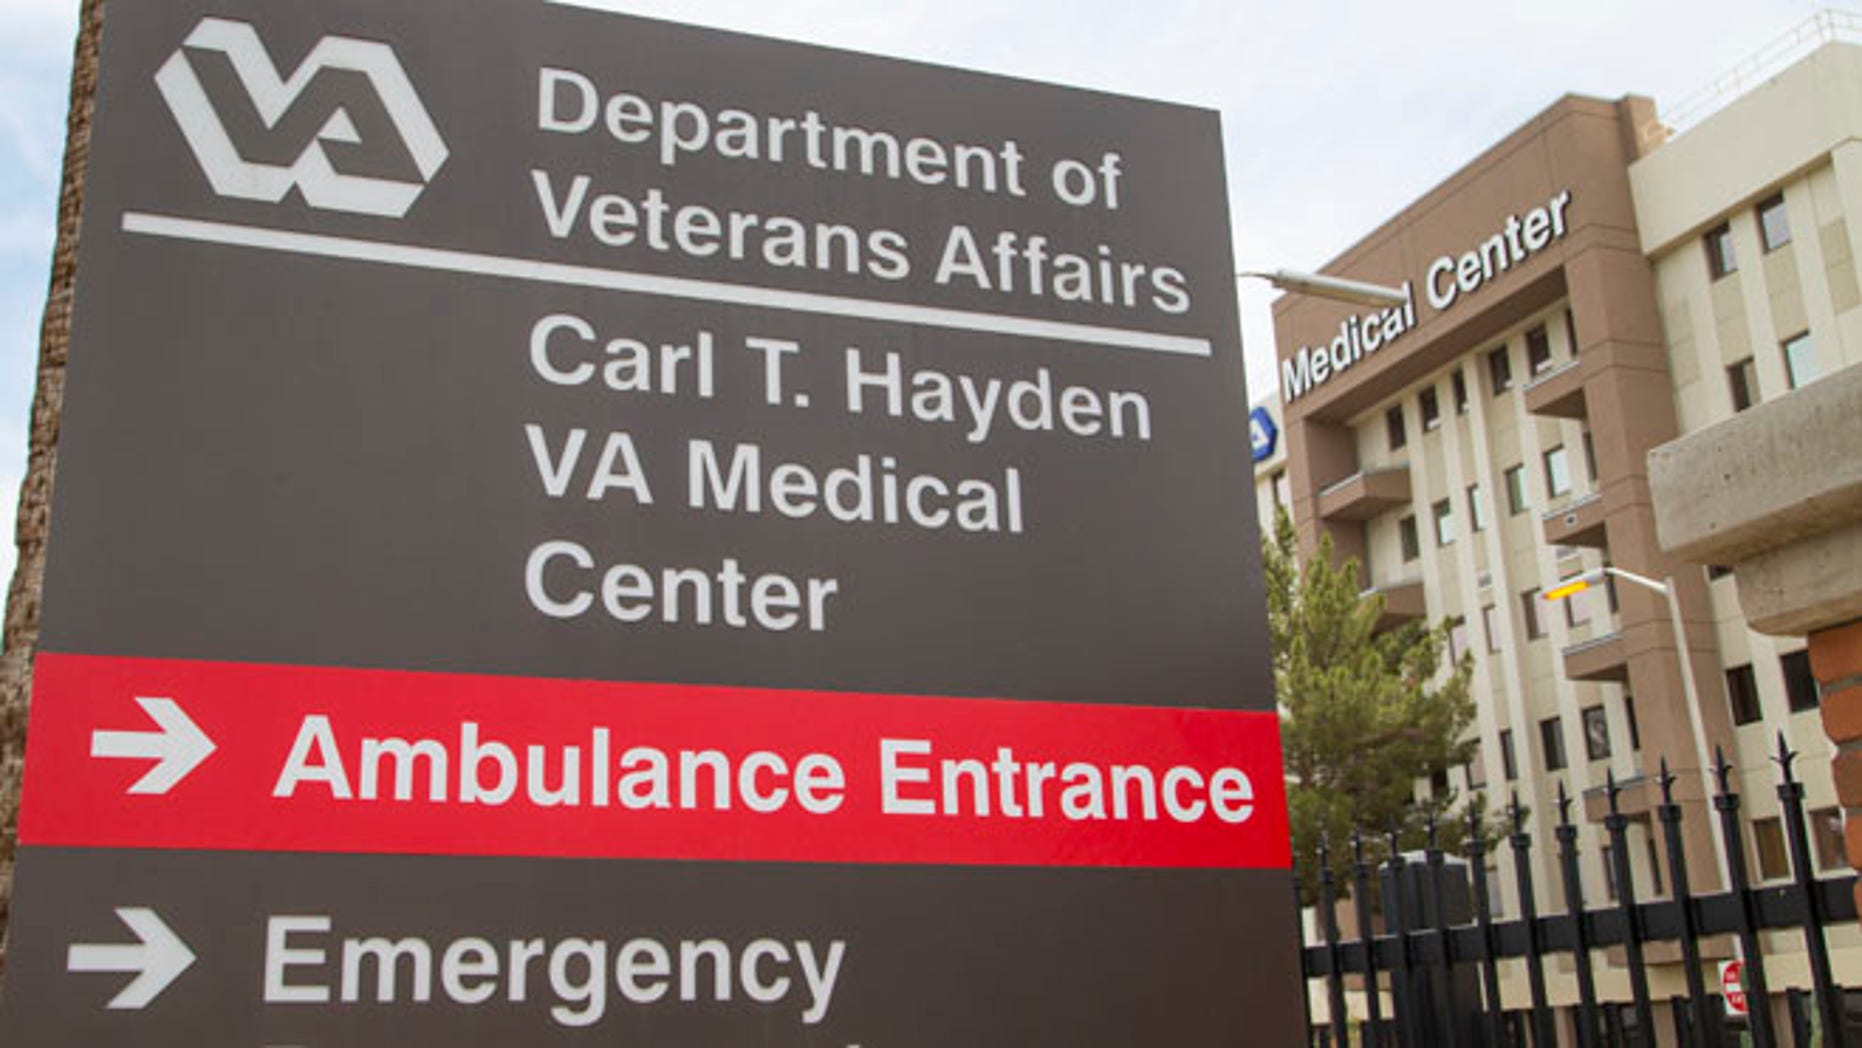 The Carl T. Hayden VA Medical Center in Phoenix is seen Wednesday May 28, 2014.